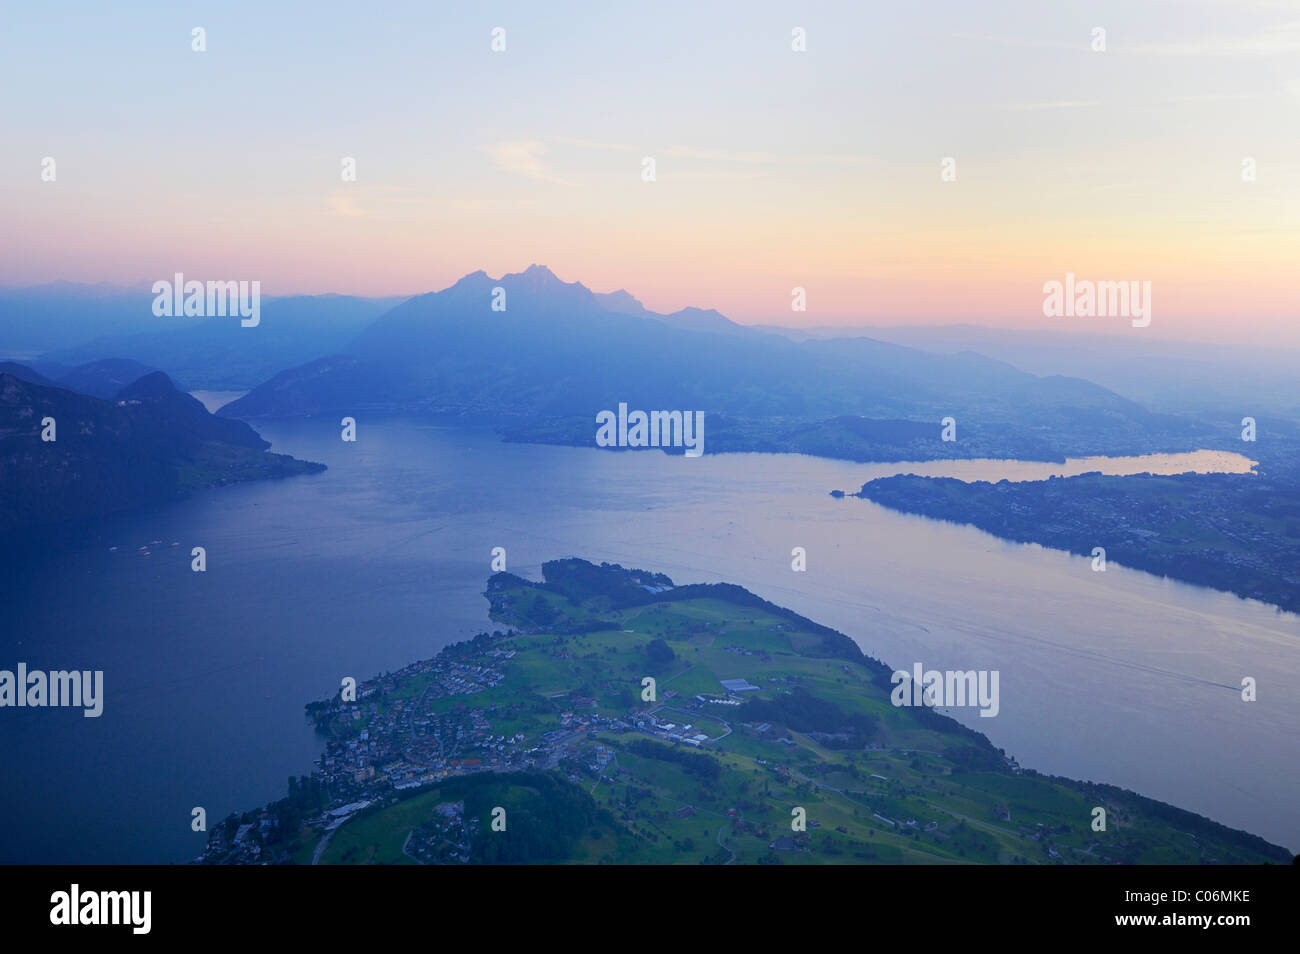 Lake Lucerne with the village of Weggis, in the distance, Pilatus Mountain, Lucerne, Switzerland, Europe - Stock Image